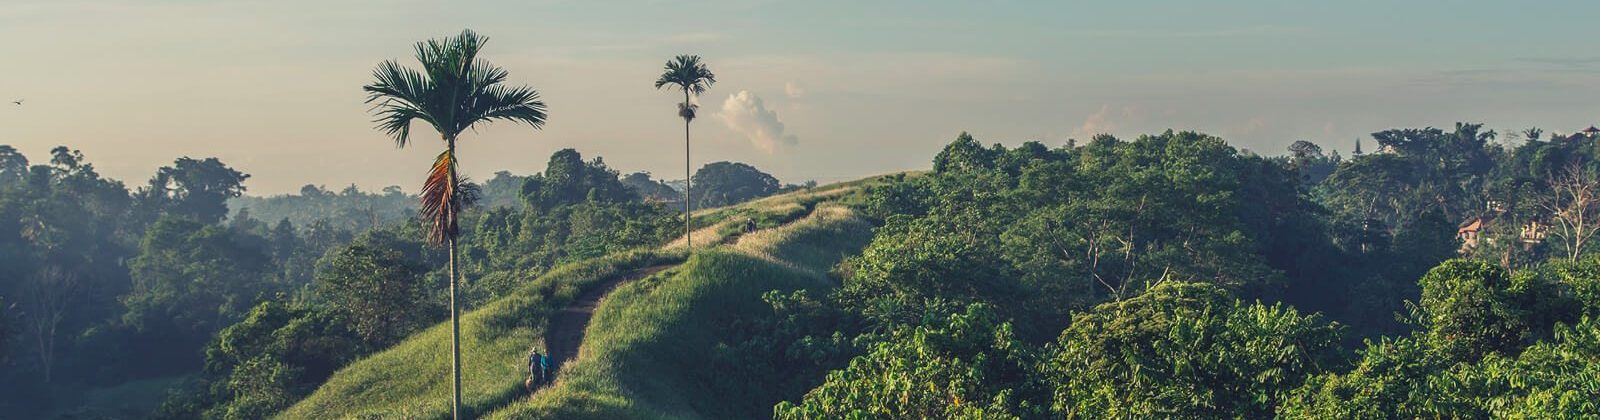 7-Day Digital Nomad Lifestyle Course